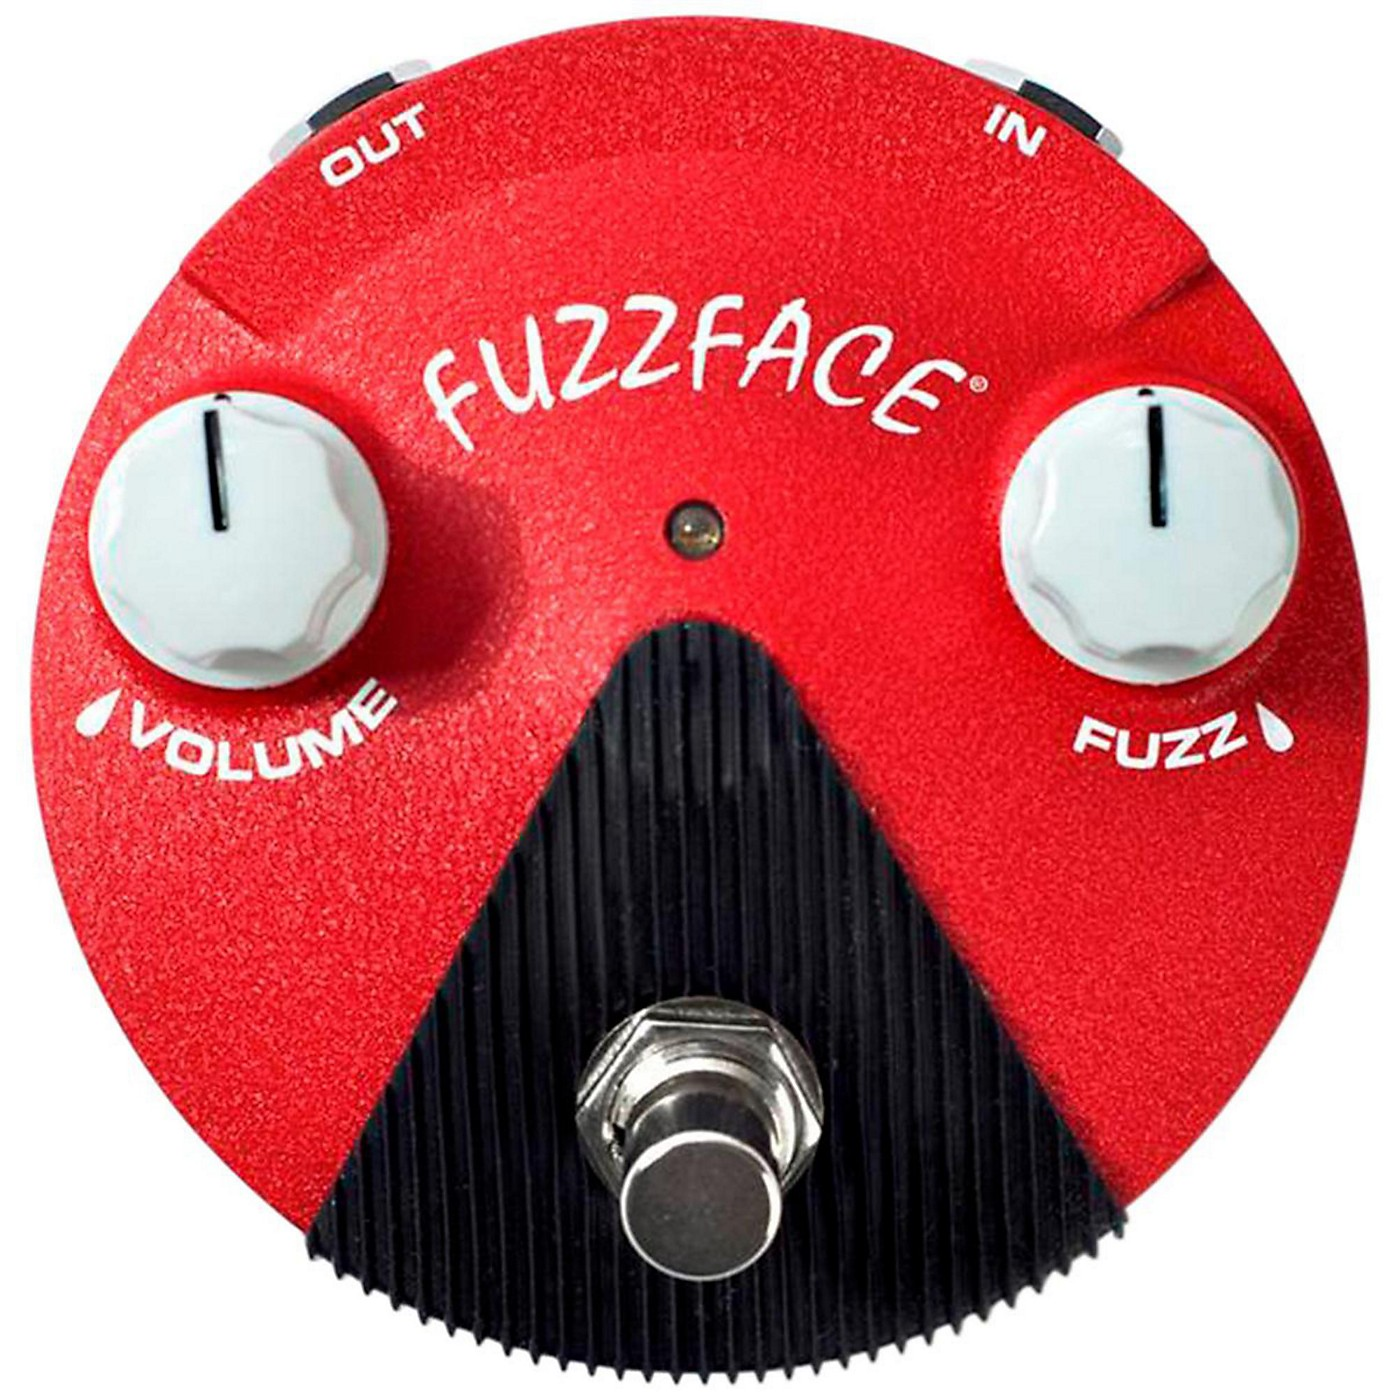 Dunlop Band of Gypsys Fuzz Face Mini Guitar Effects Pedal thumbnail